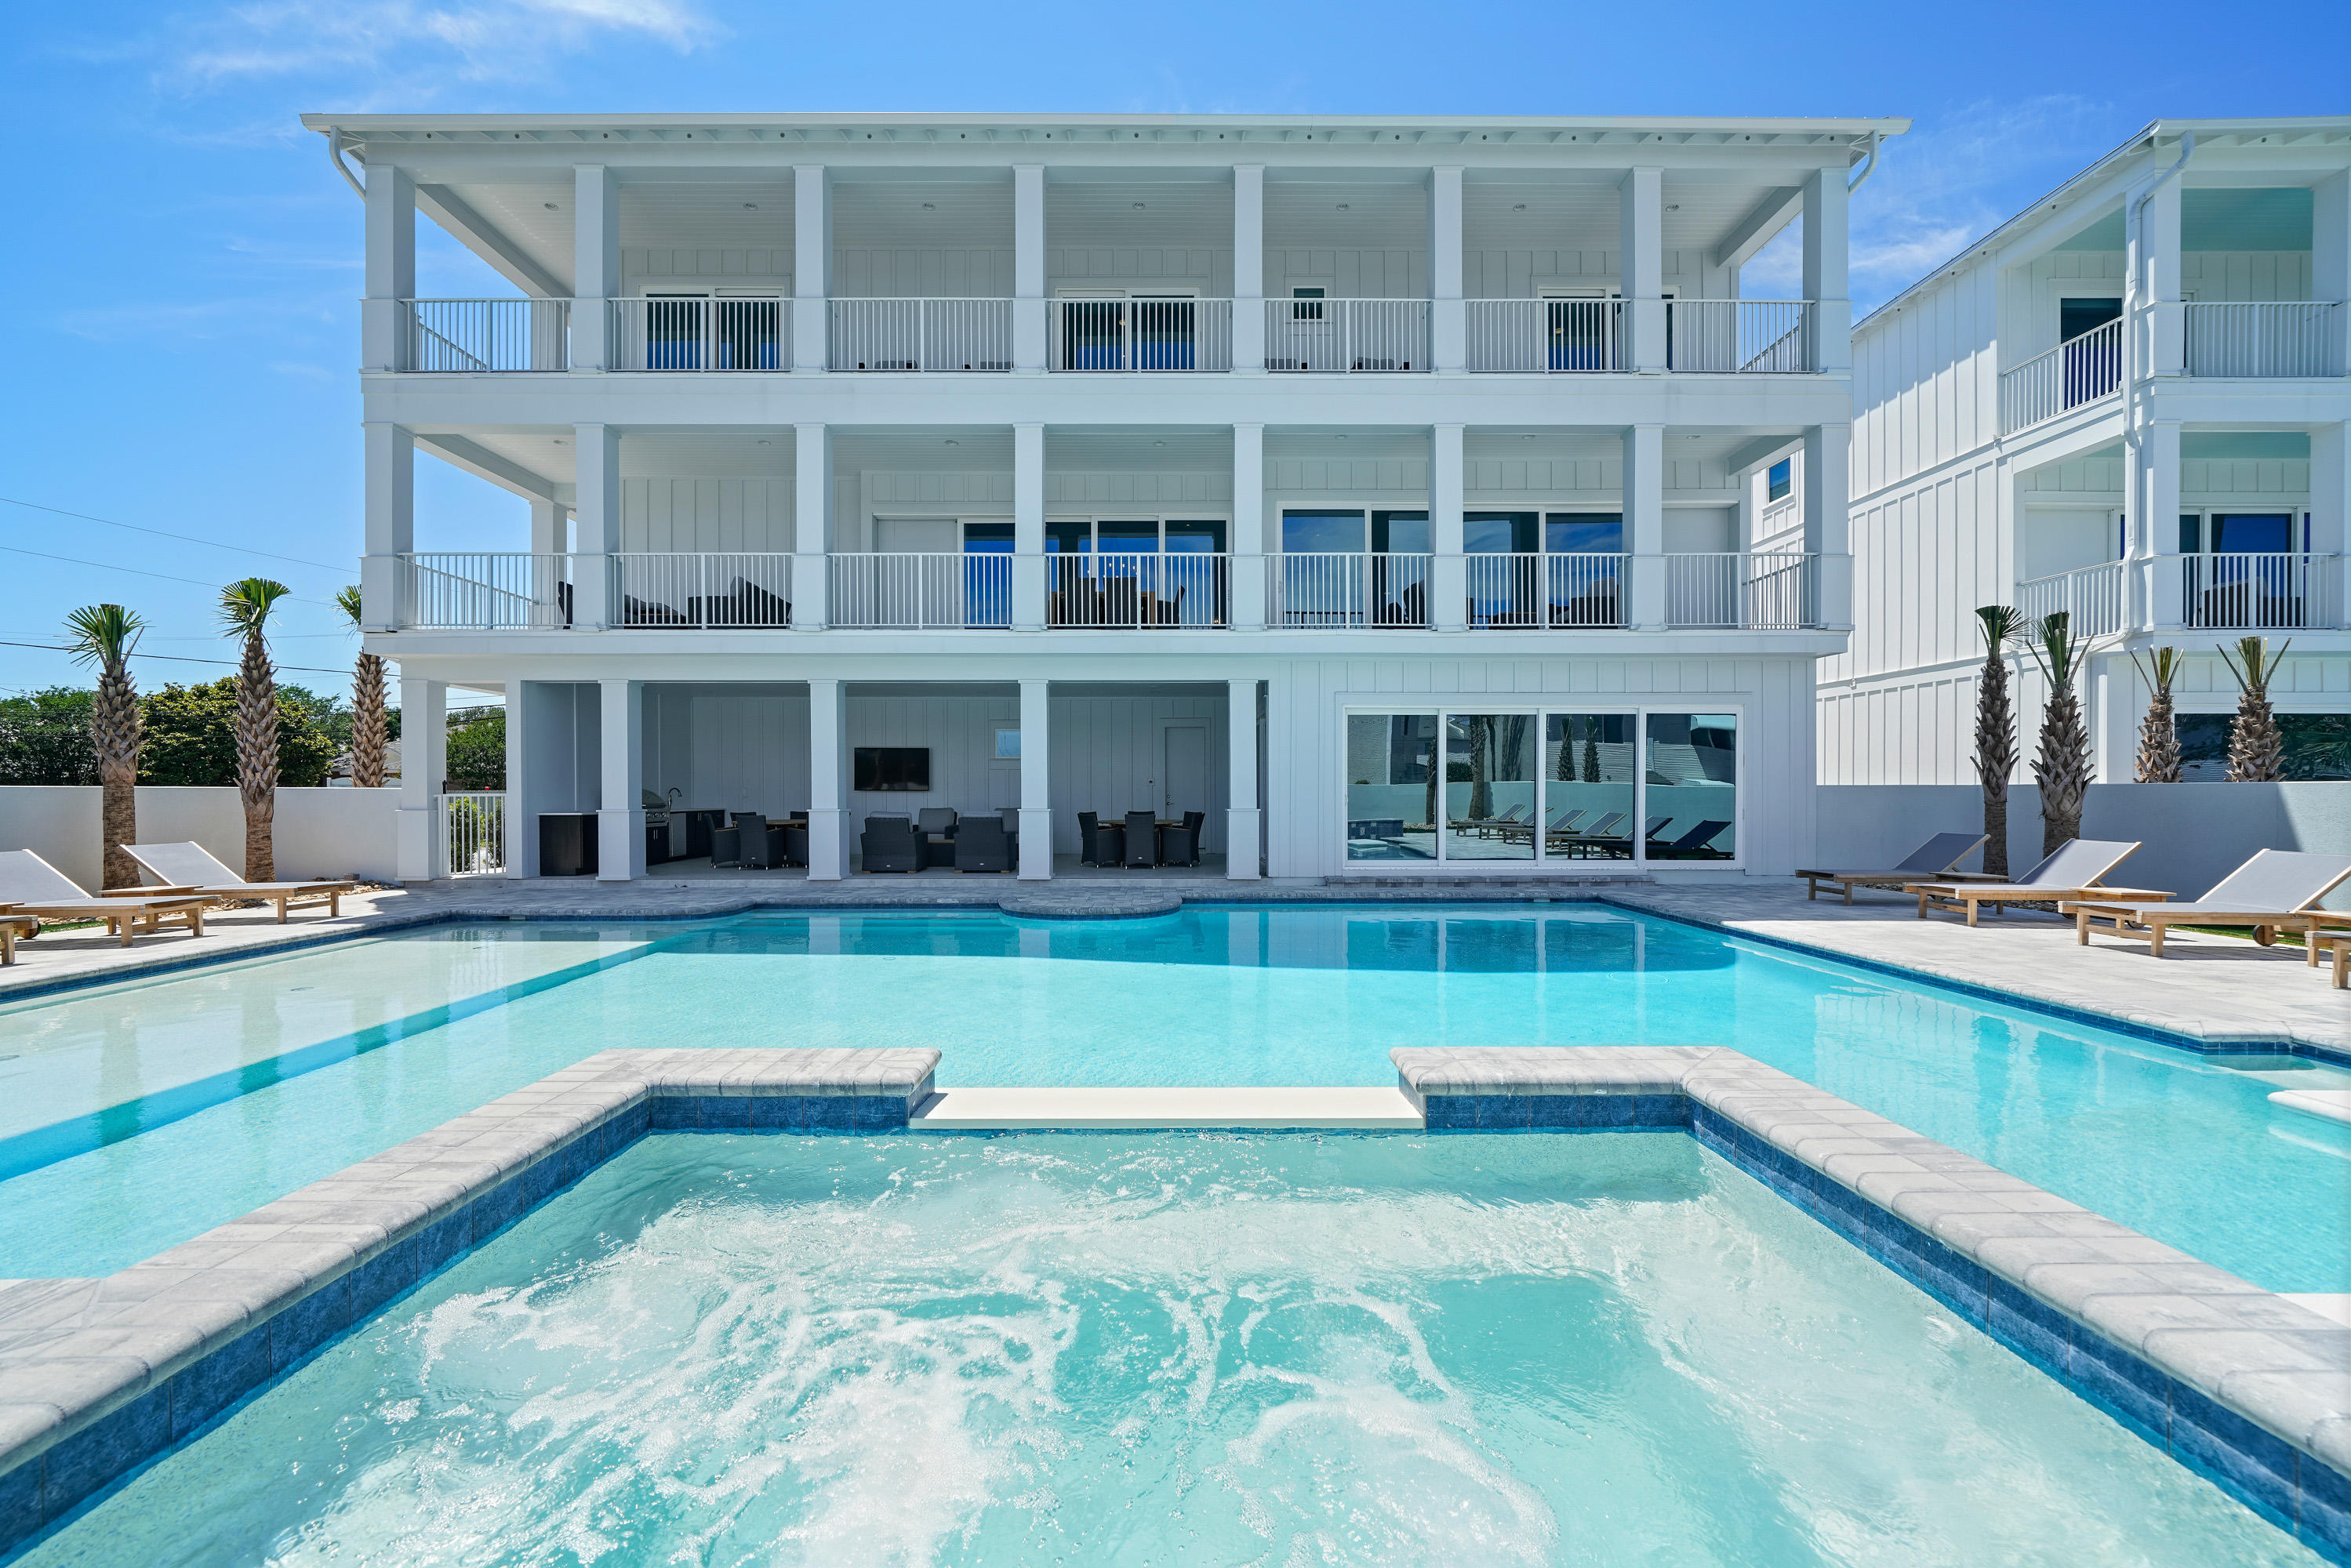 Photo of home for sale at 204 Driftwood, Miramar Beach FL